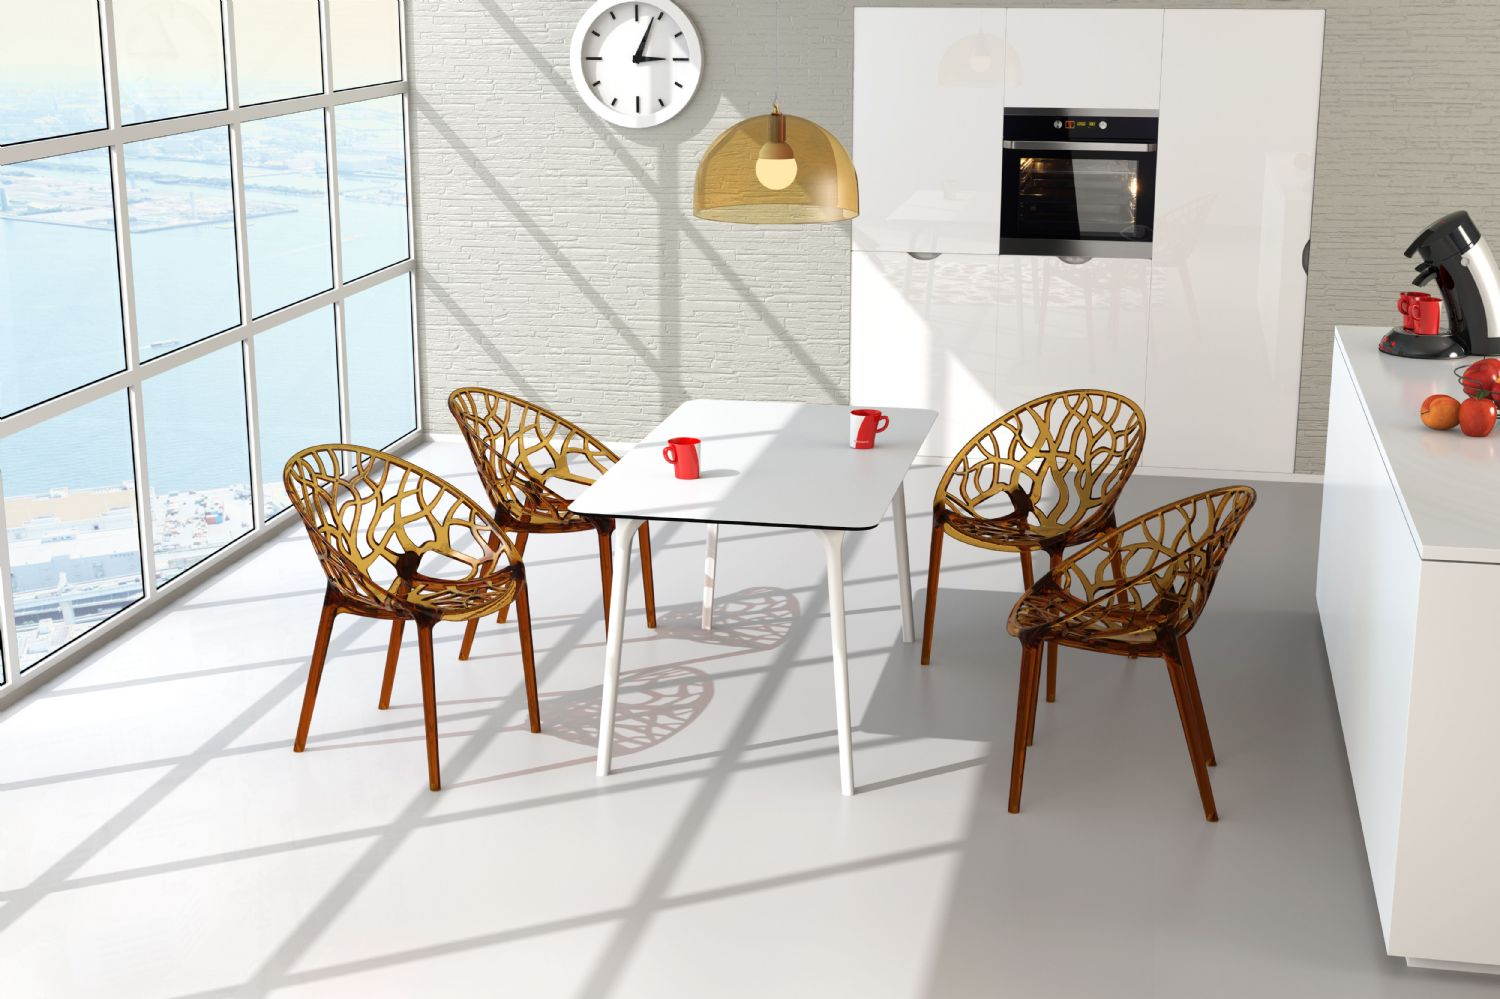 Crystal Polycarbonate Modern Dining Chair Transparent ISP052-TCL - 7